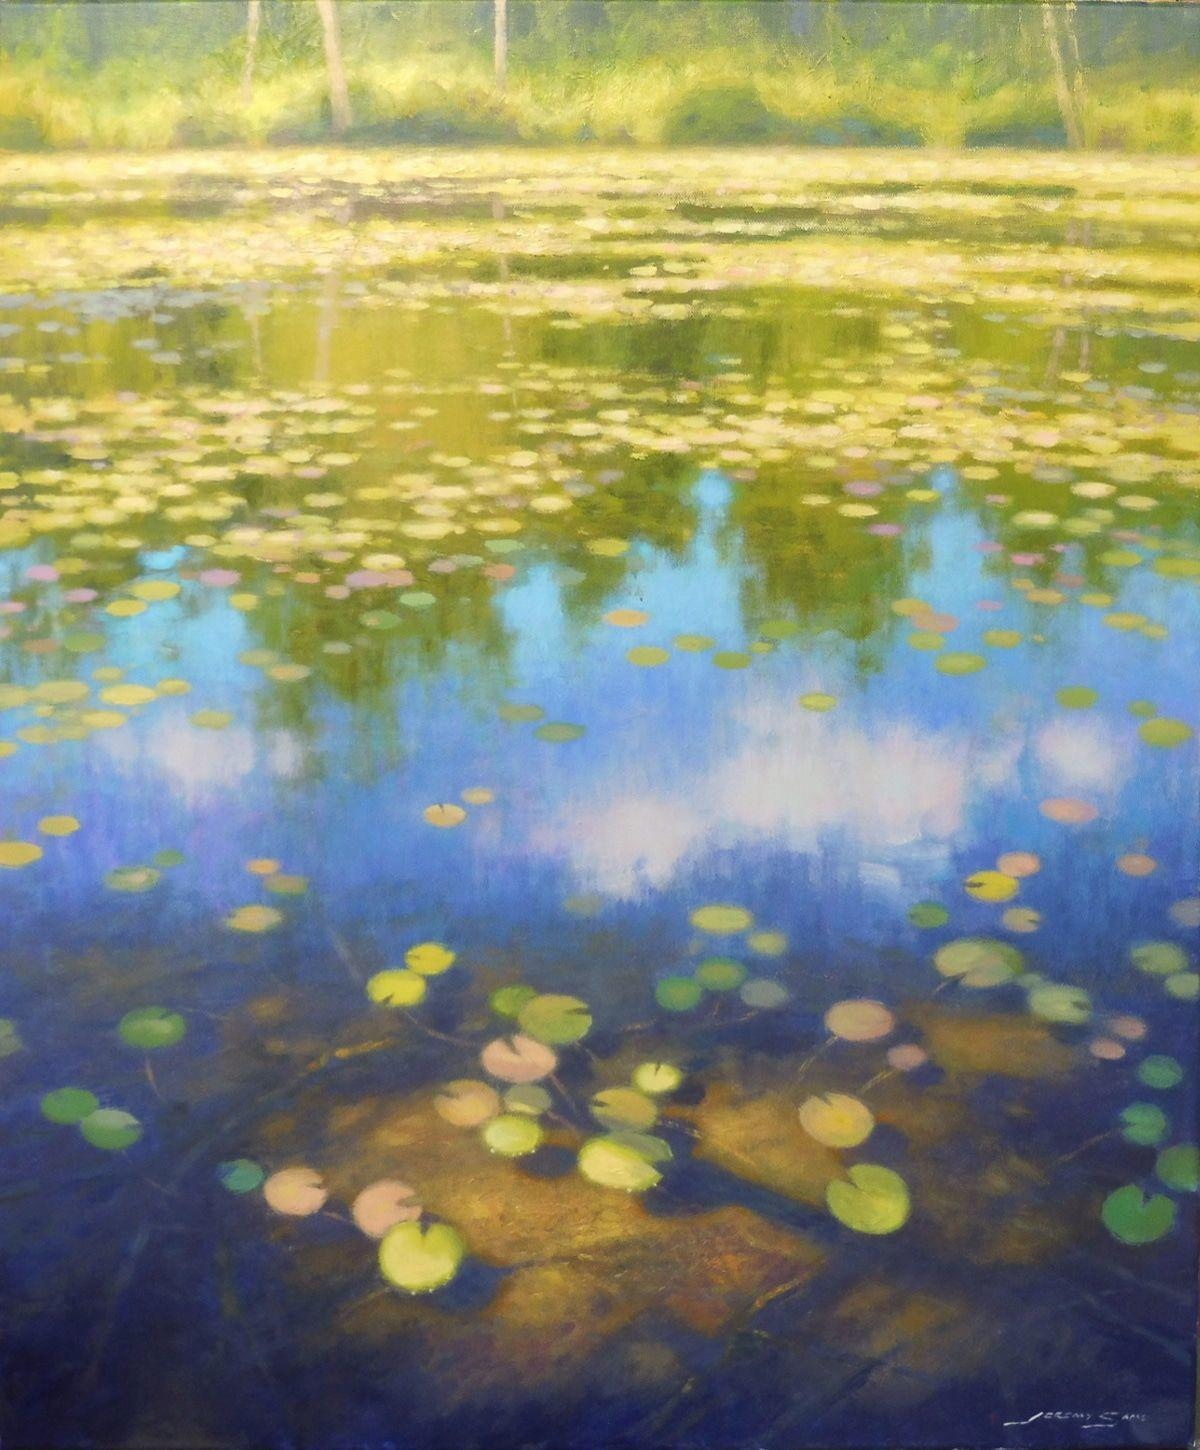 'Bass Lake Waterlilies' by Jeremy Sams